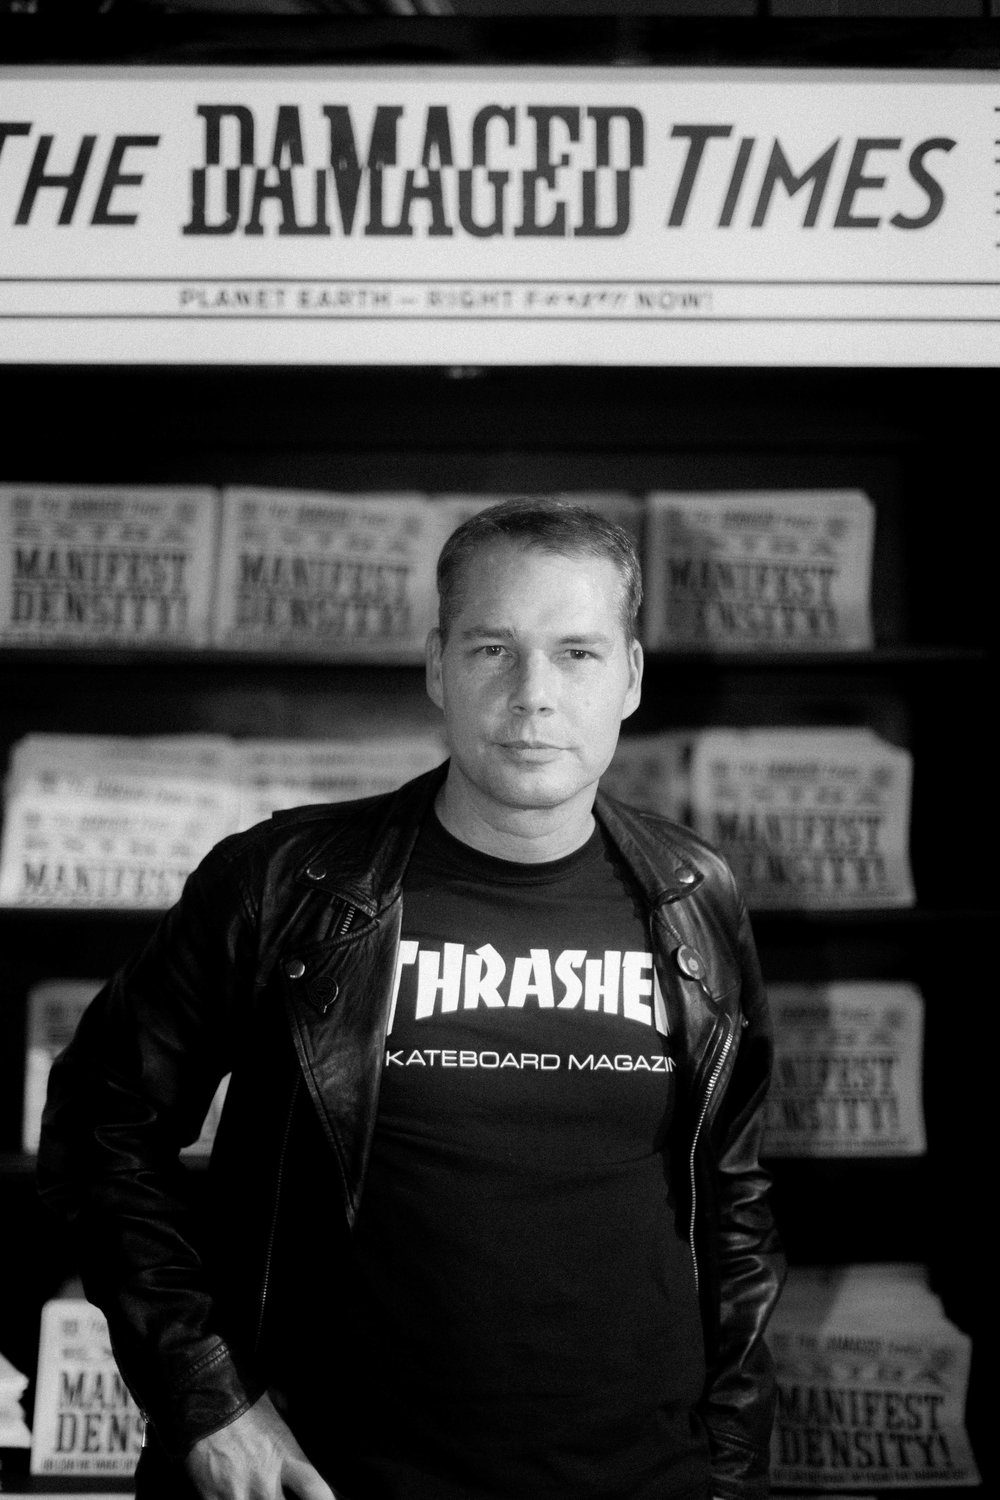 Shepard Fairey | image by Christian Smiley